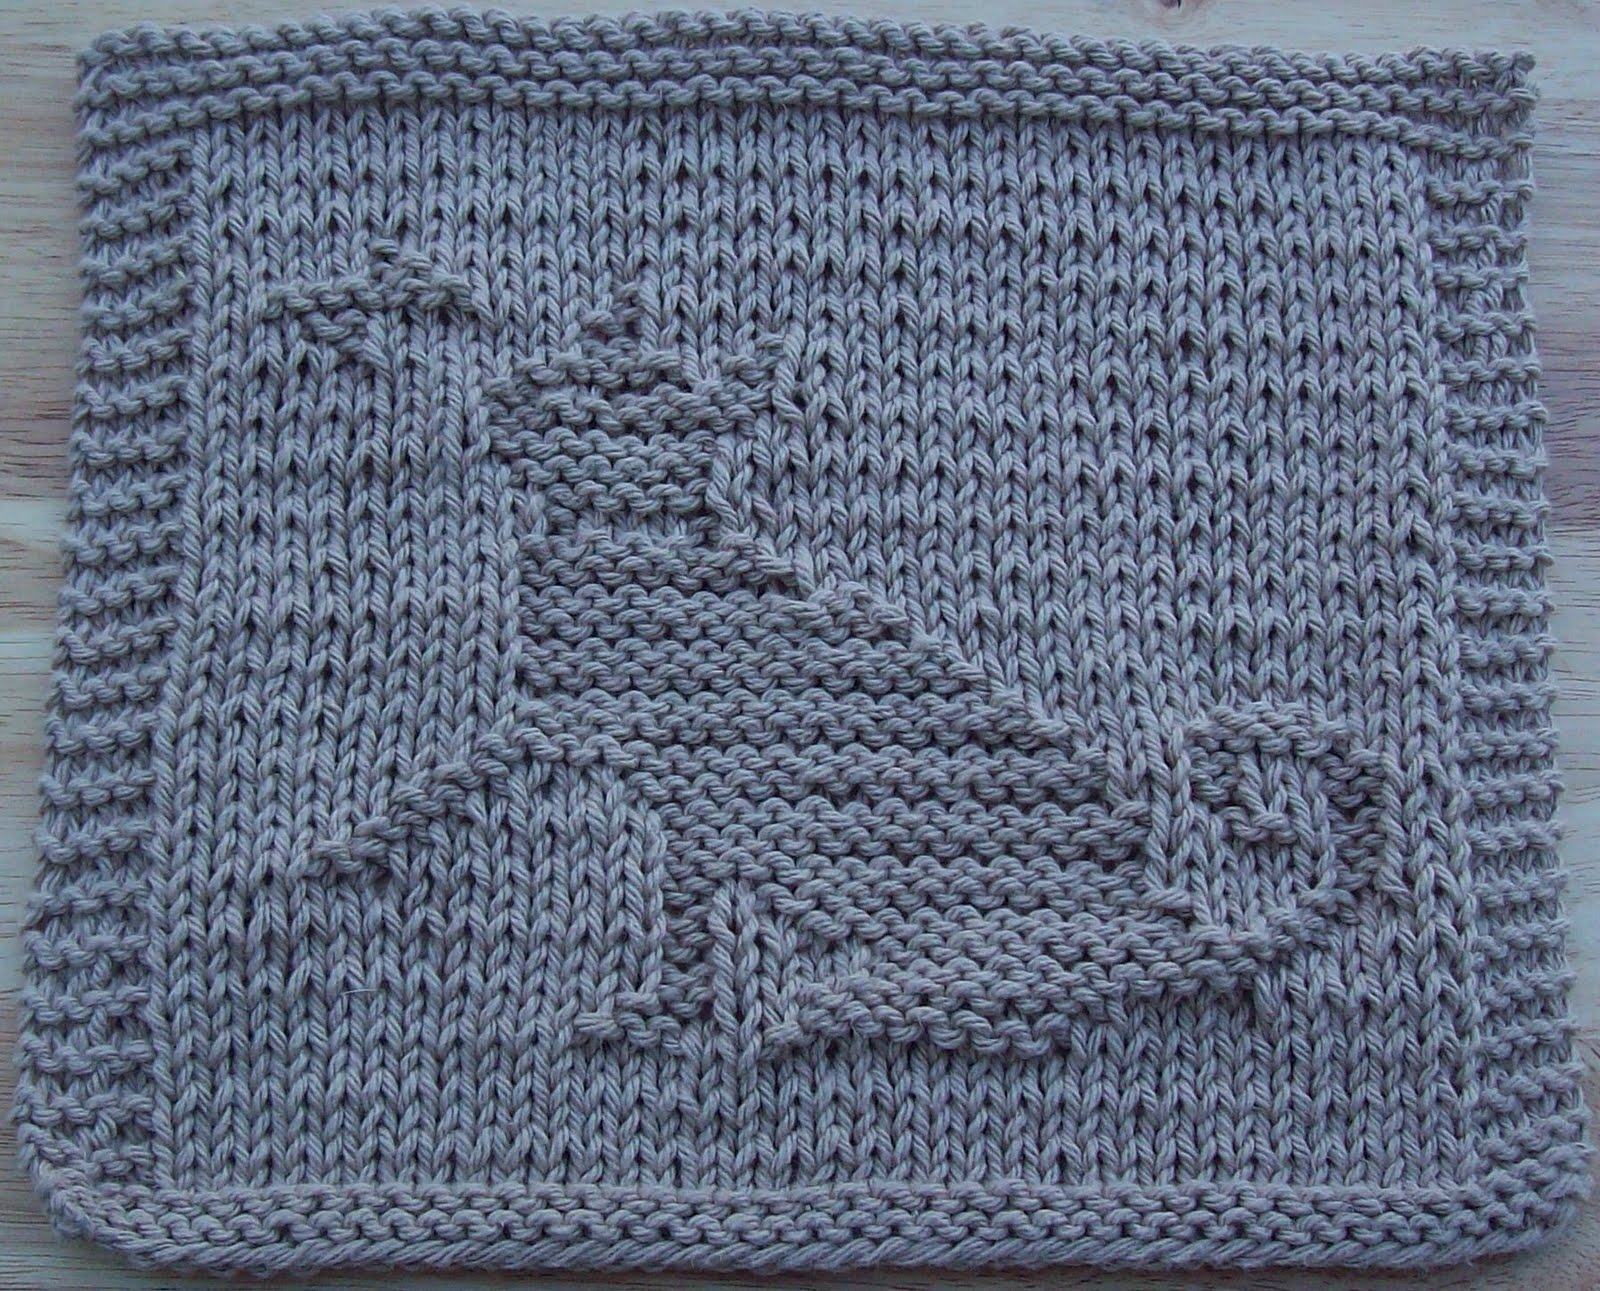 Free Knitting Pattern Butterfly Dishcloth : DigKnitty Designs: Cat with Butterfly, Too Knit Dishcloth Pattern